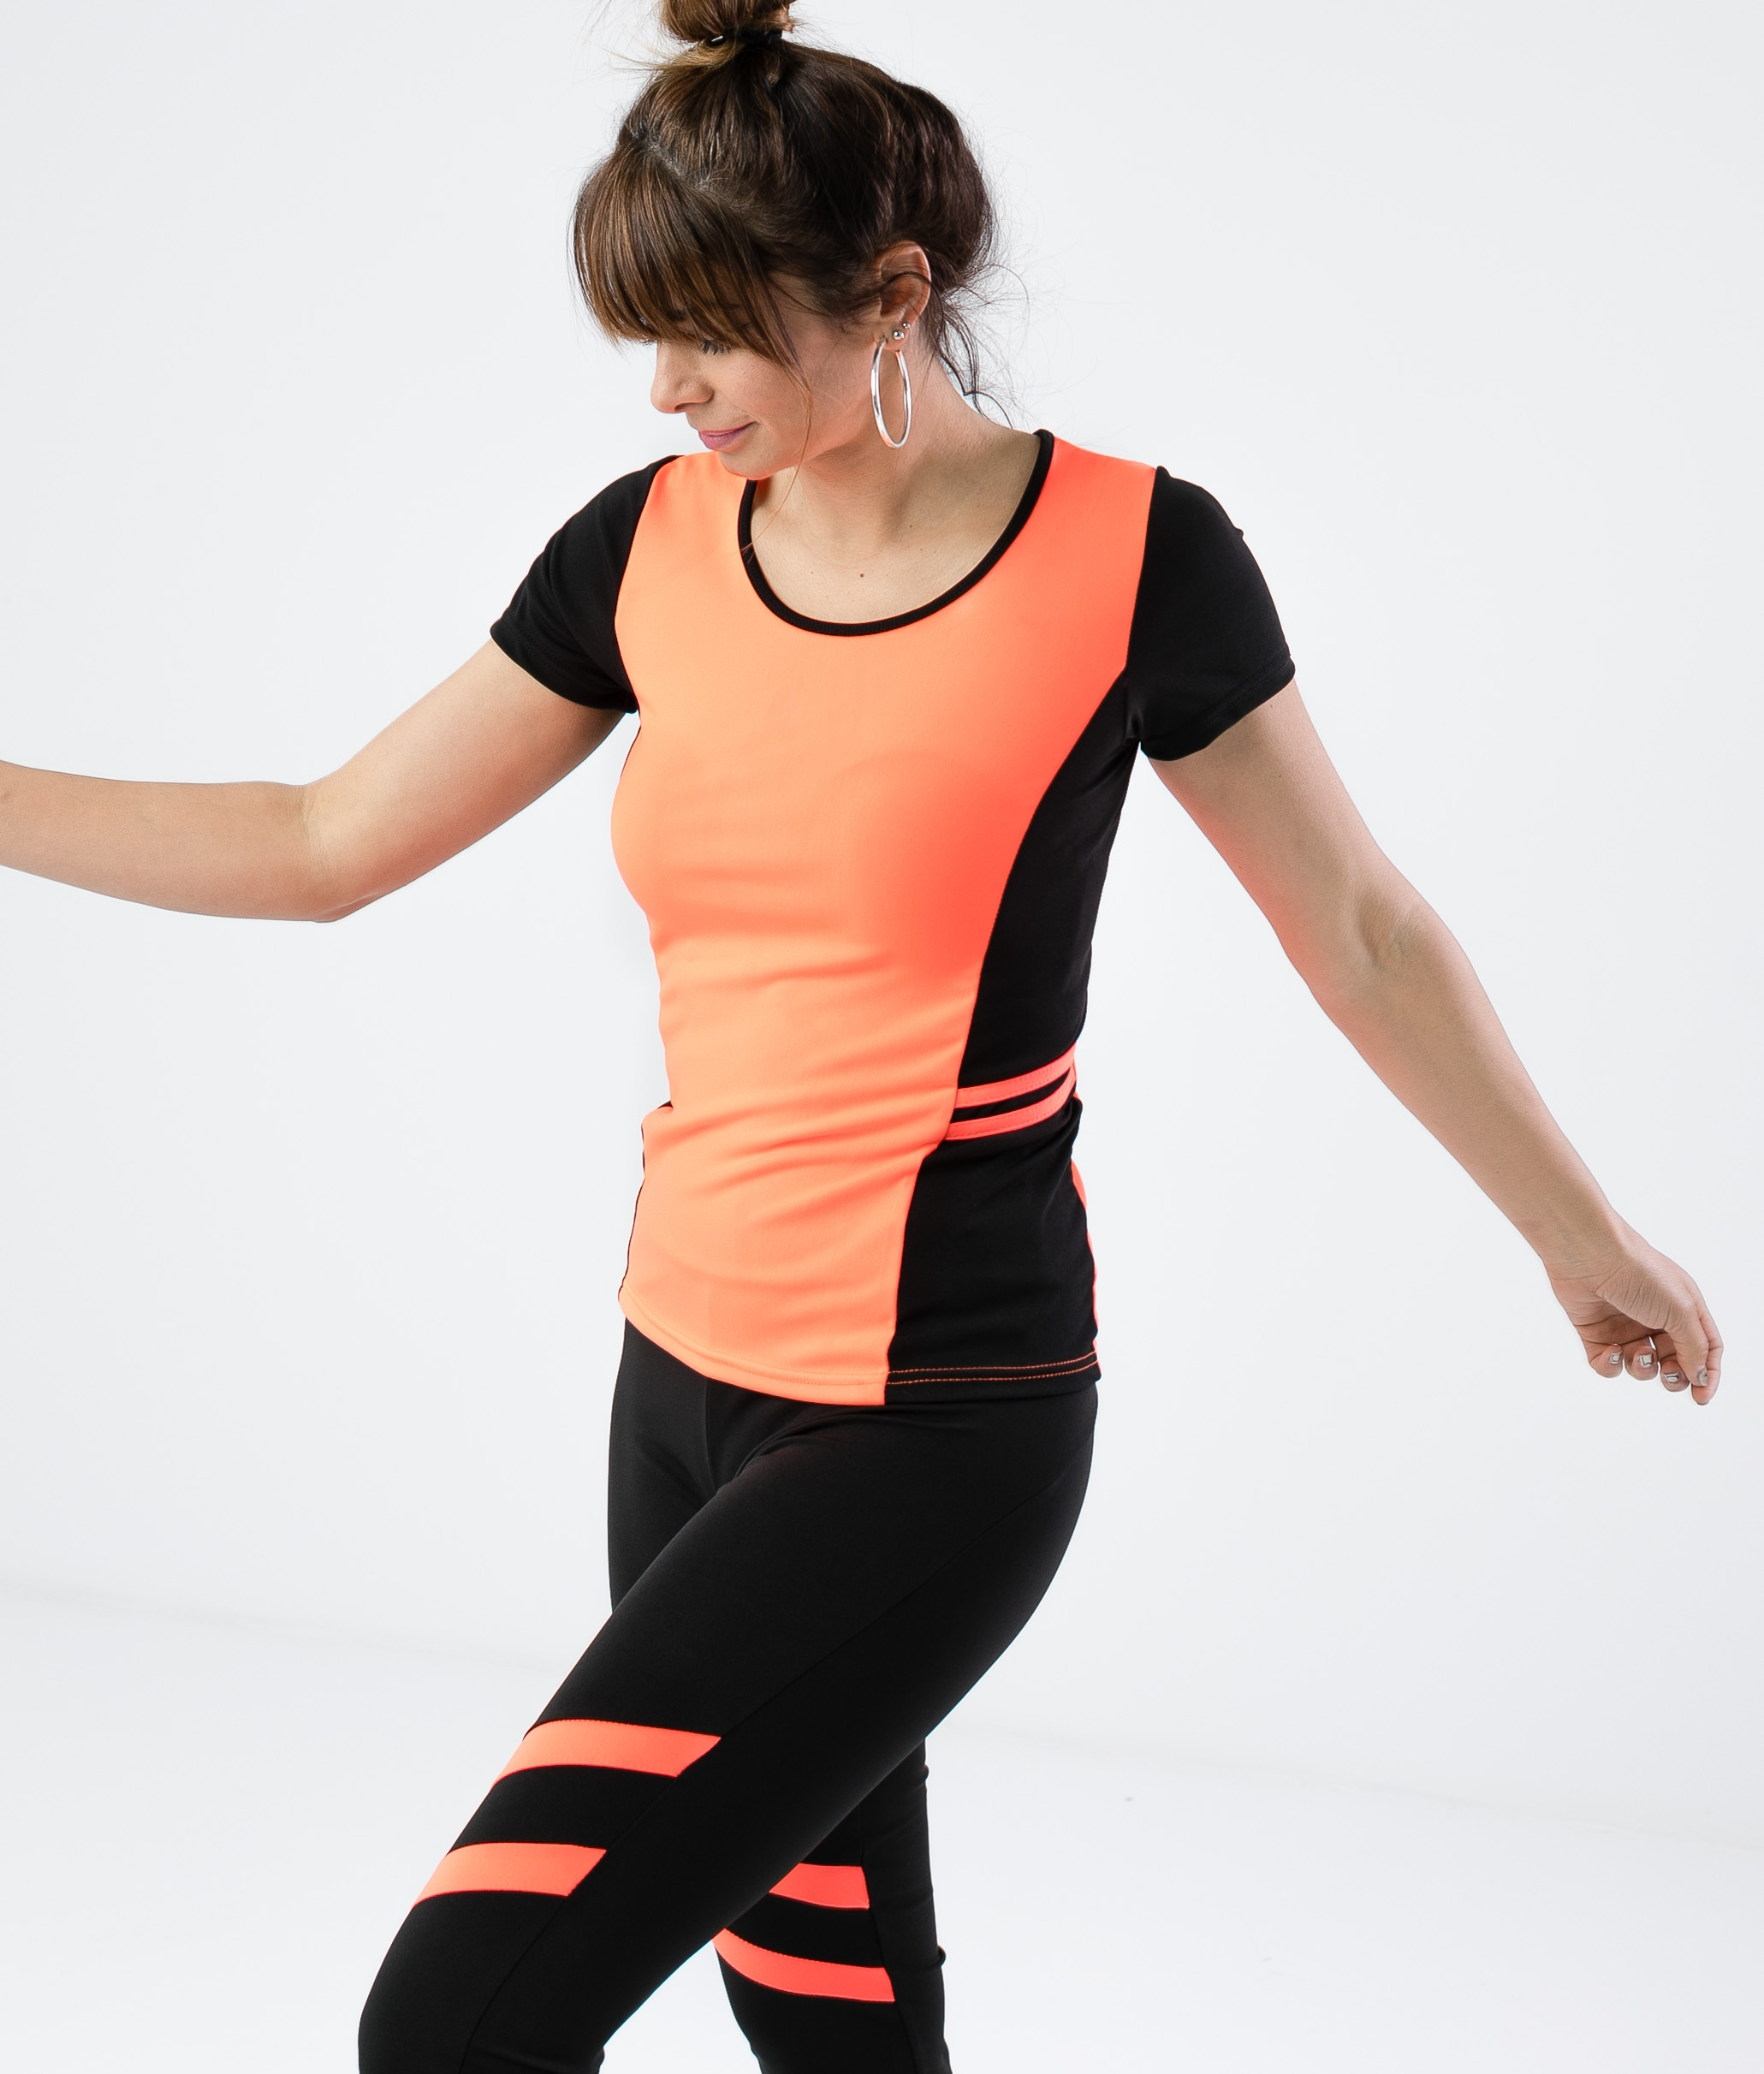 OUTFIT DOMIN - ORANGE